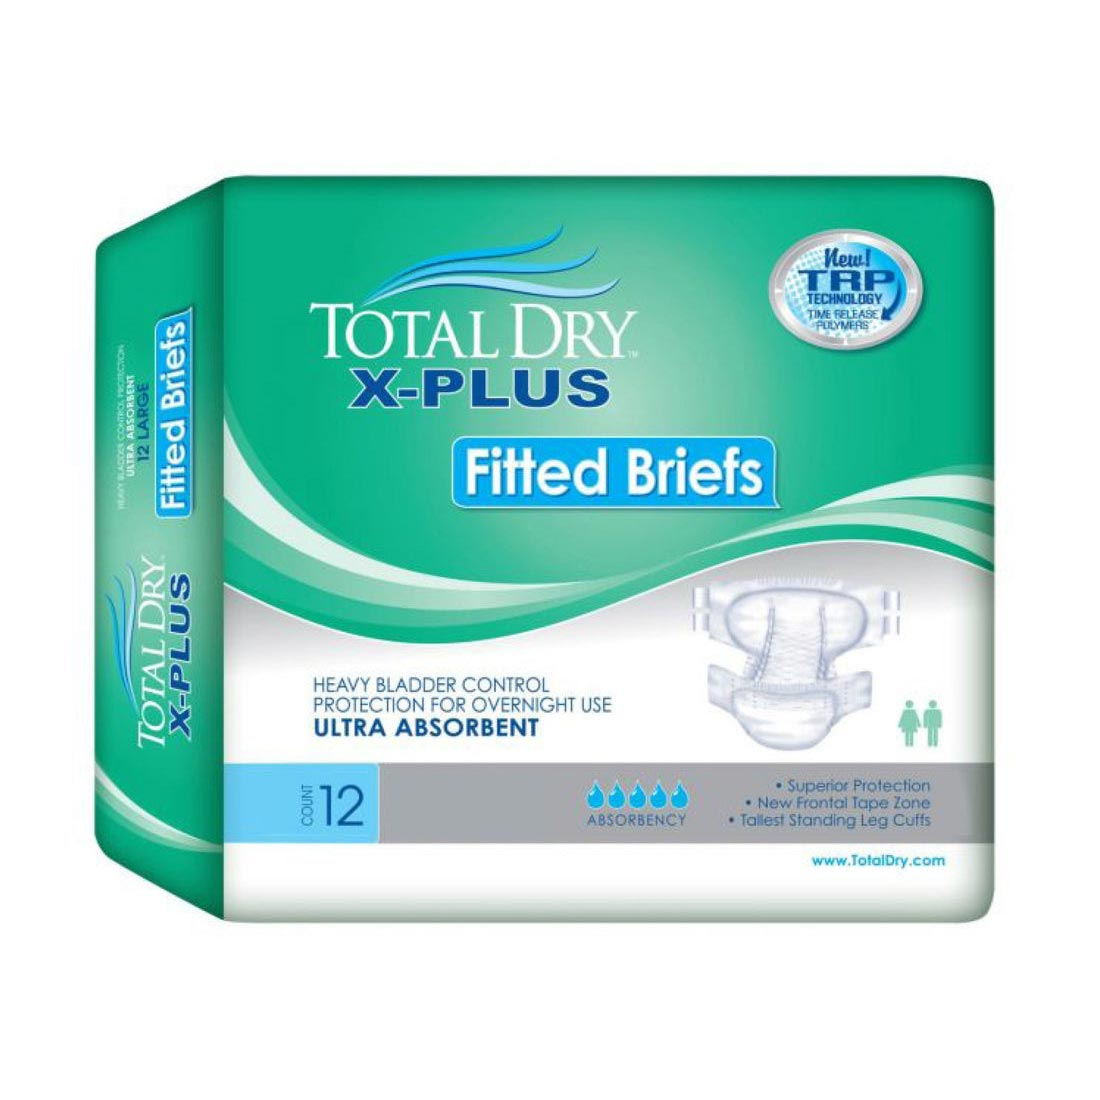 TotalDry X-Plus Fitted Briefs